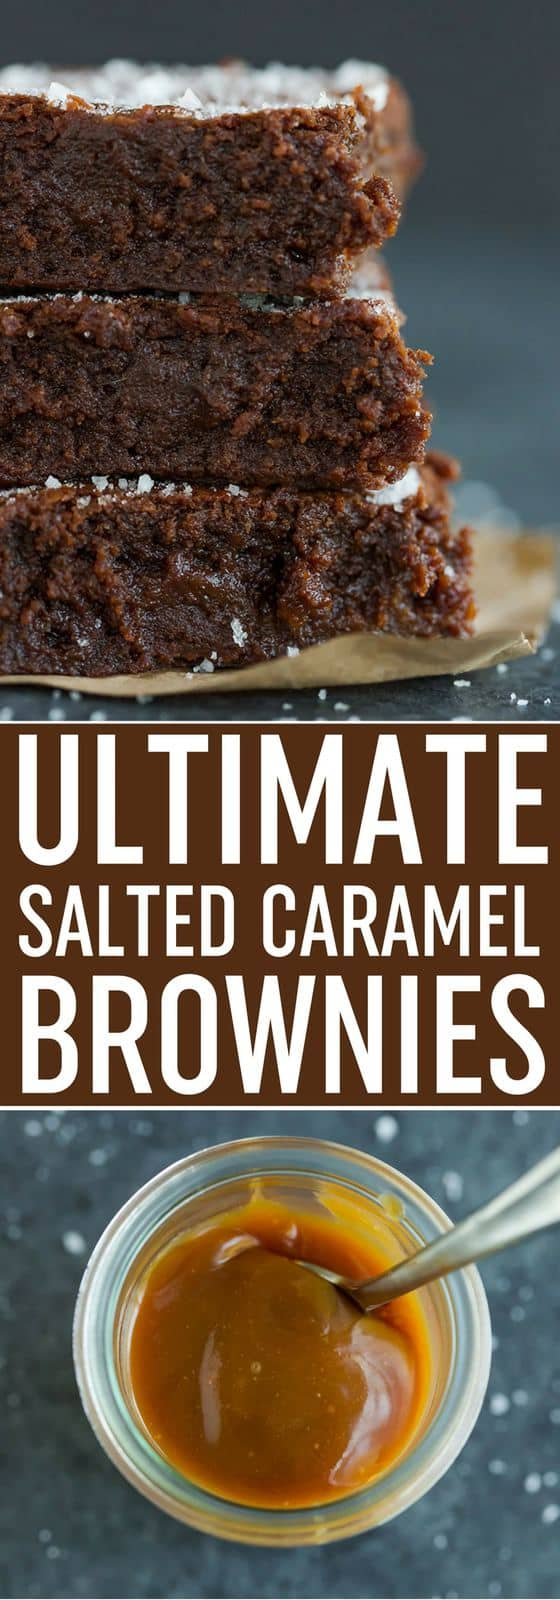 Sweet and Salty Brownies - Rich and fudgy brownies with a layer of salted caramel in the middle and sprinkled with fleur de sel. Best salted caramel brownies!